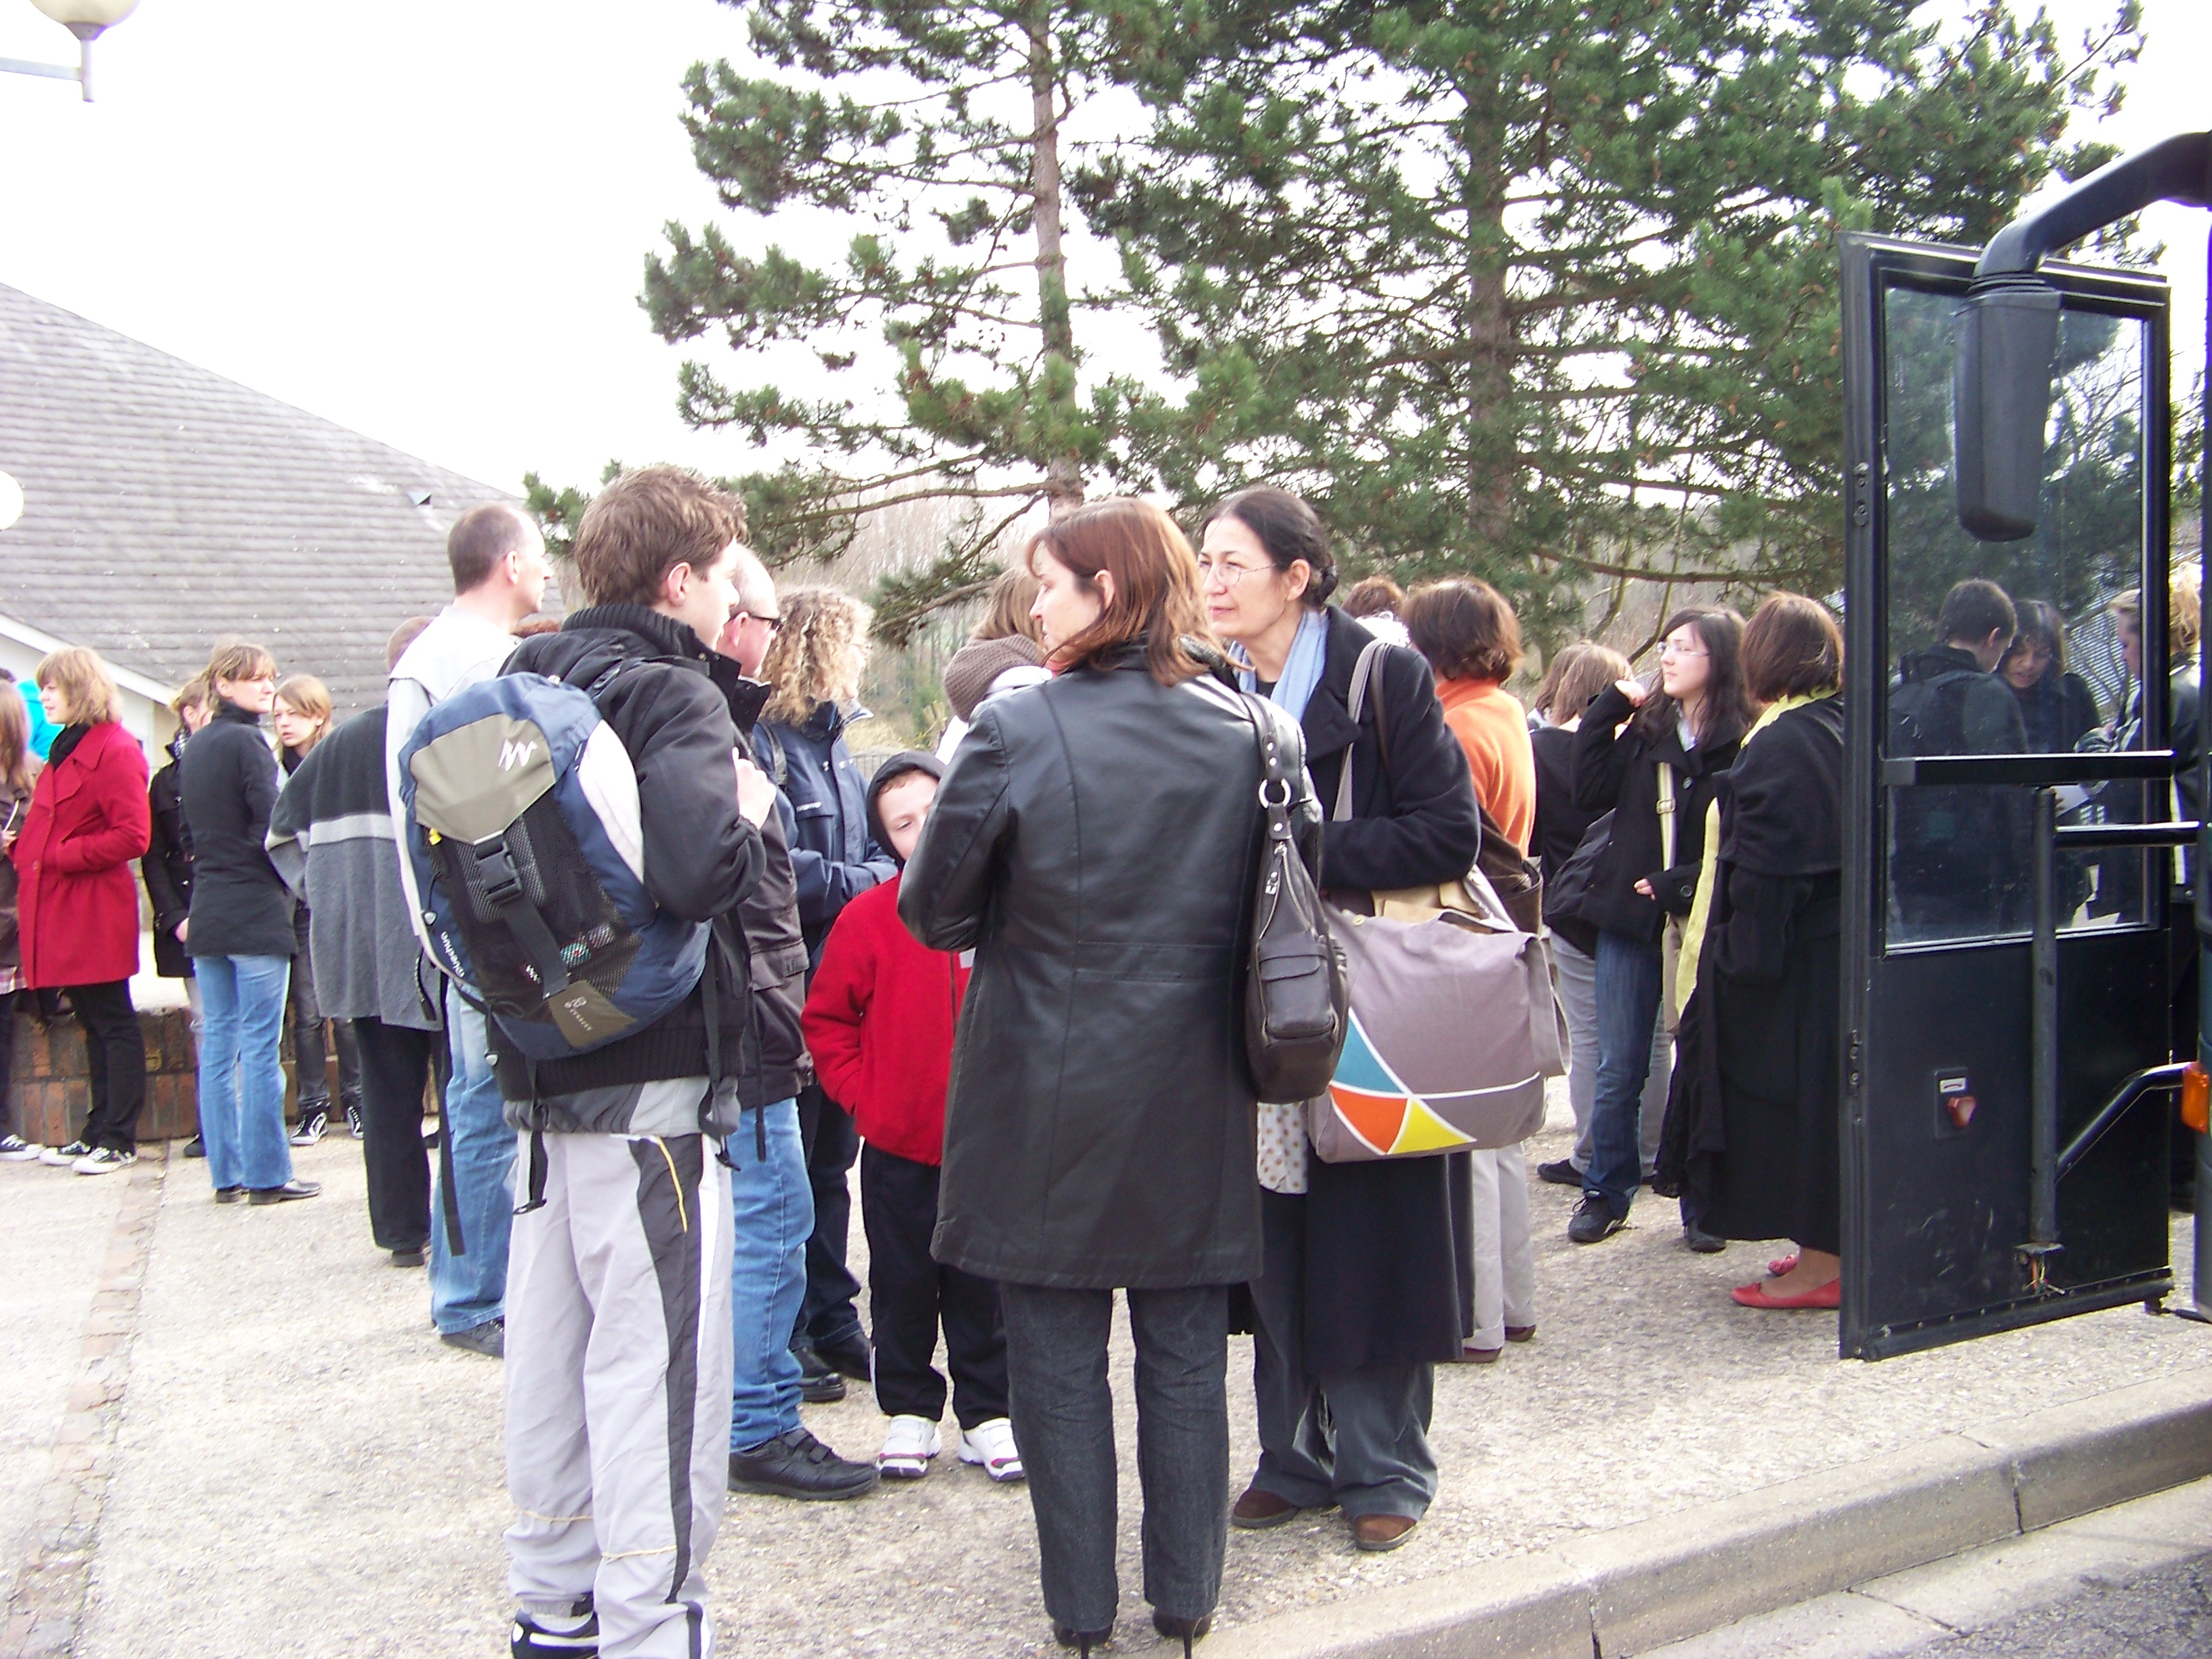 Outside the school in Epône